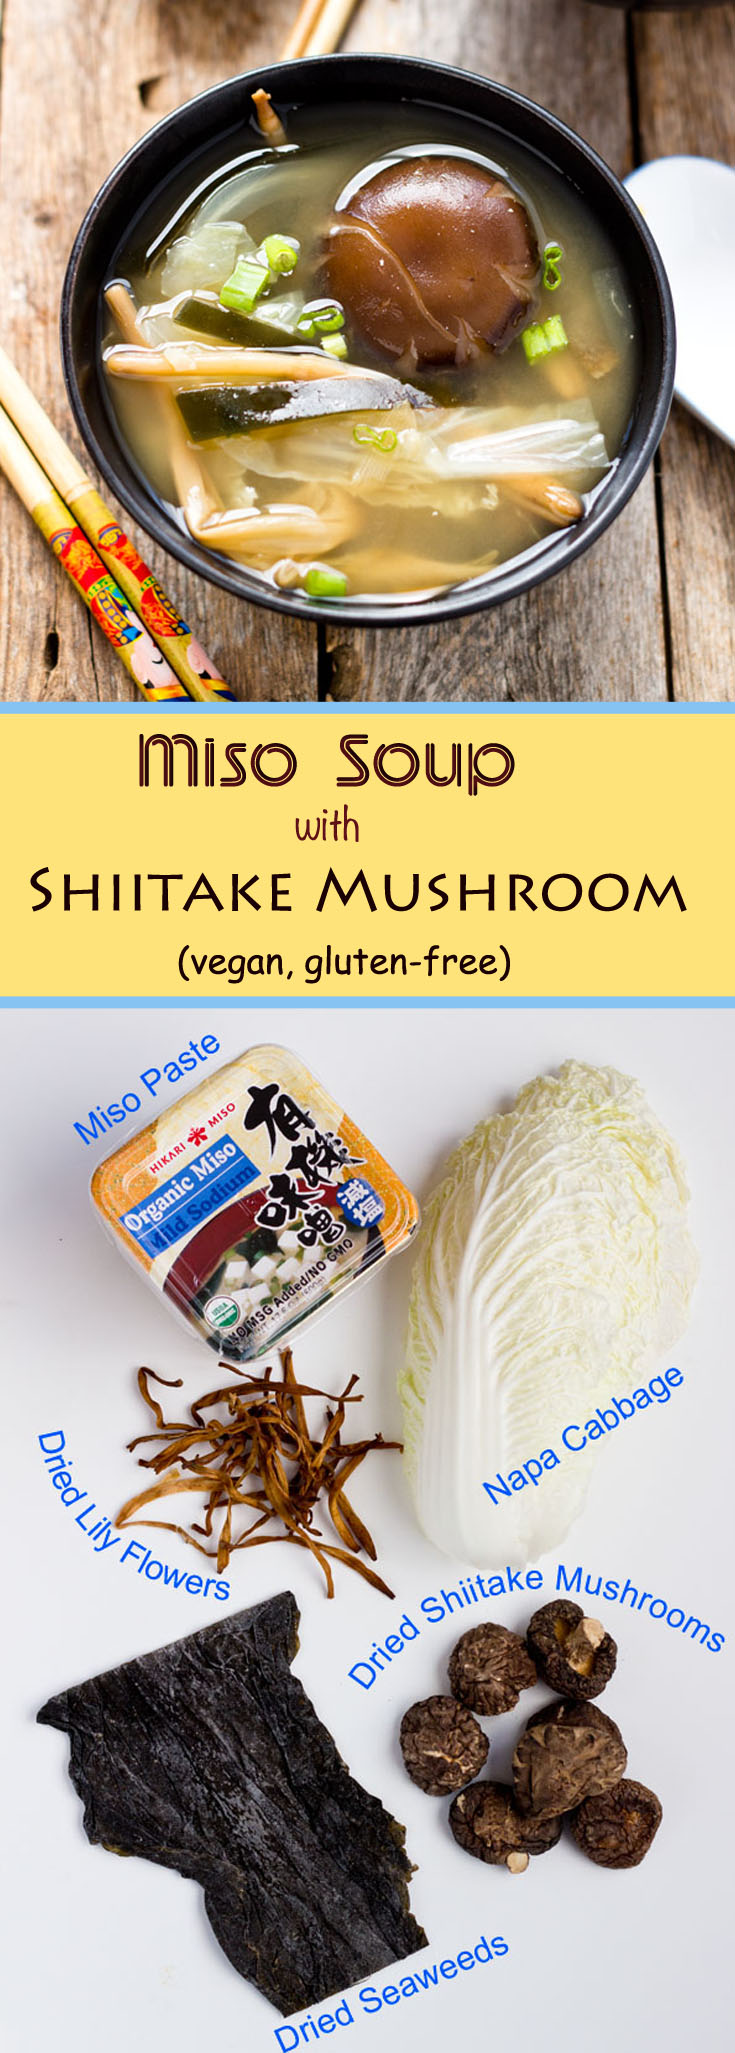 This vegan, gluten-free miso soup is using a homemade shiitake mushroom and kumbo kelp dashi as the base. The flavor is complete and complex.